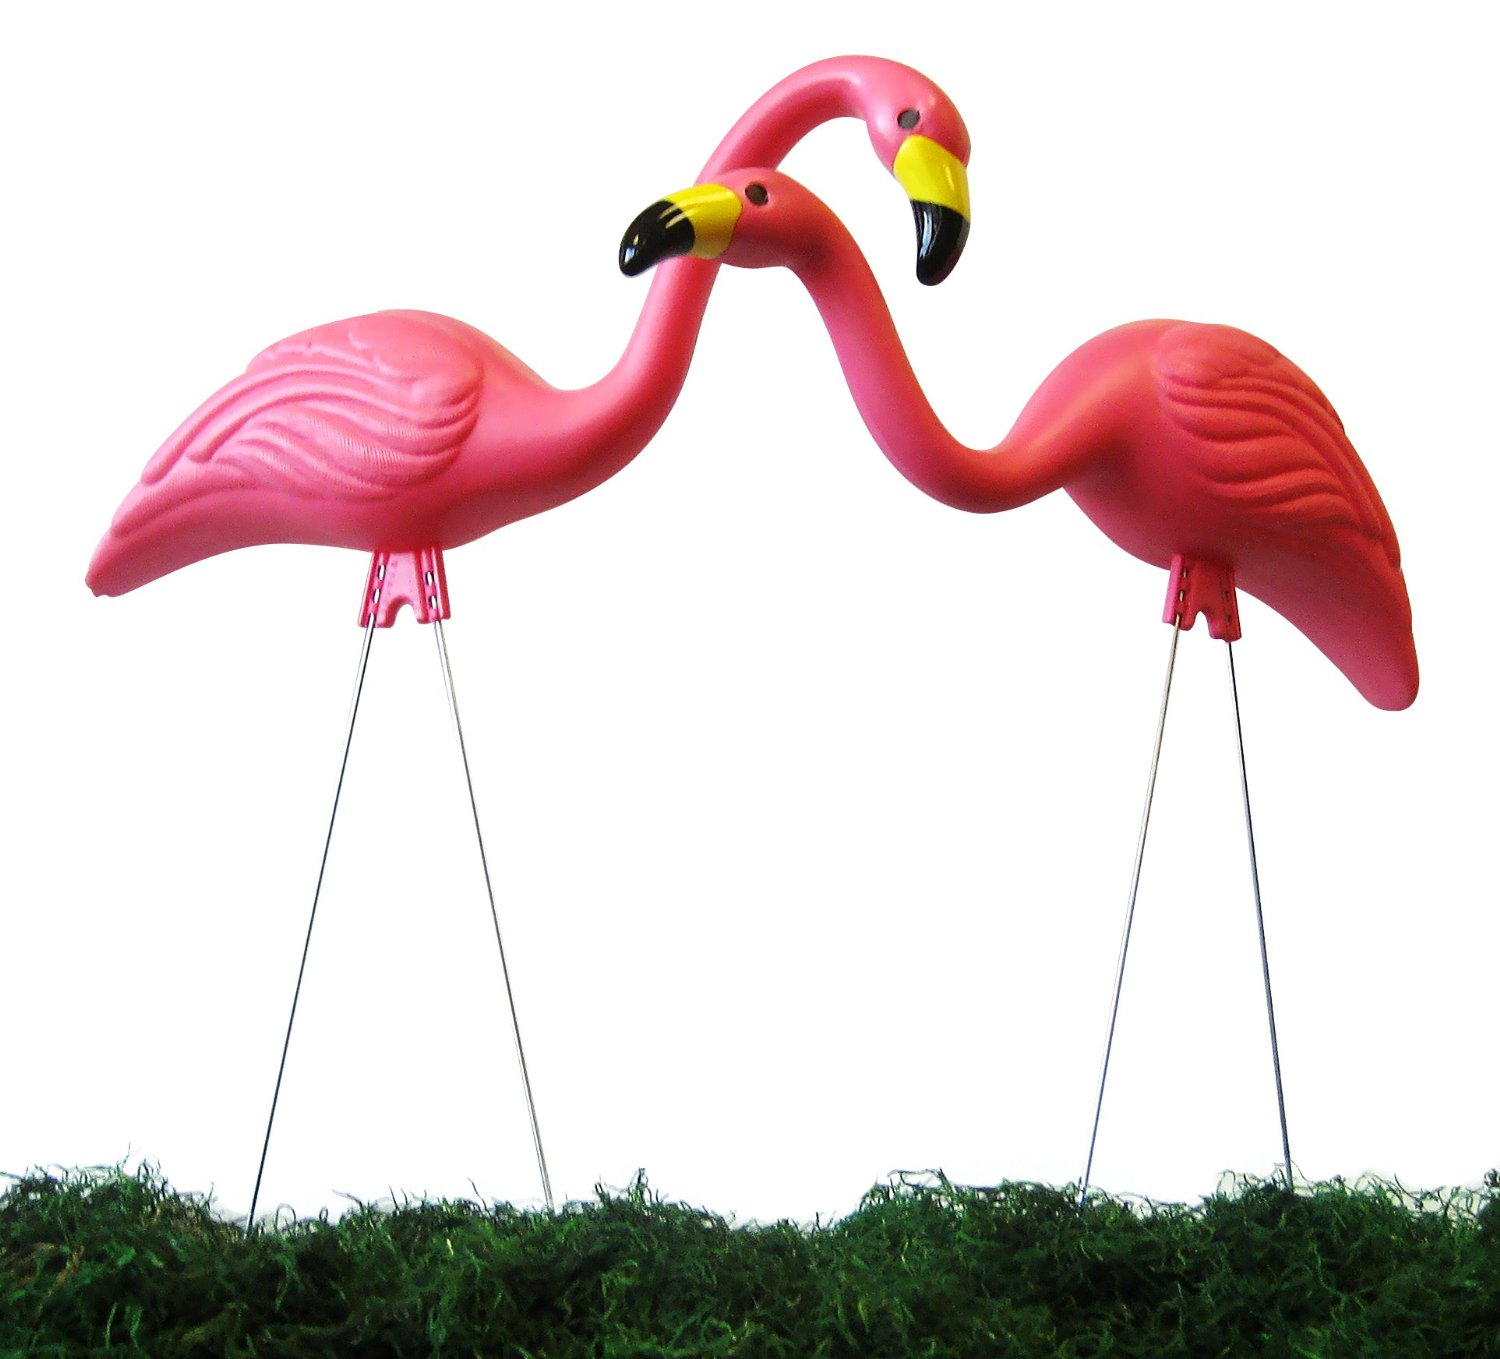 Cheap 2 Flamingos Find 2 Flamingos Deals On Line At